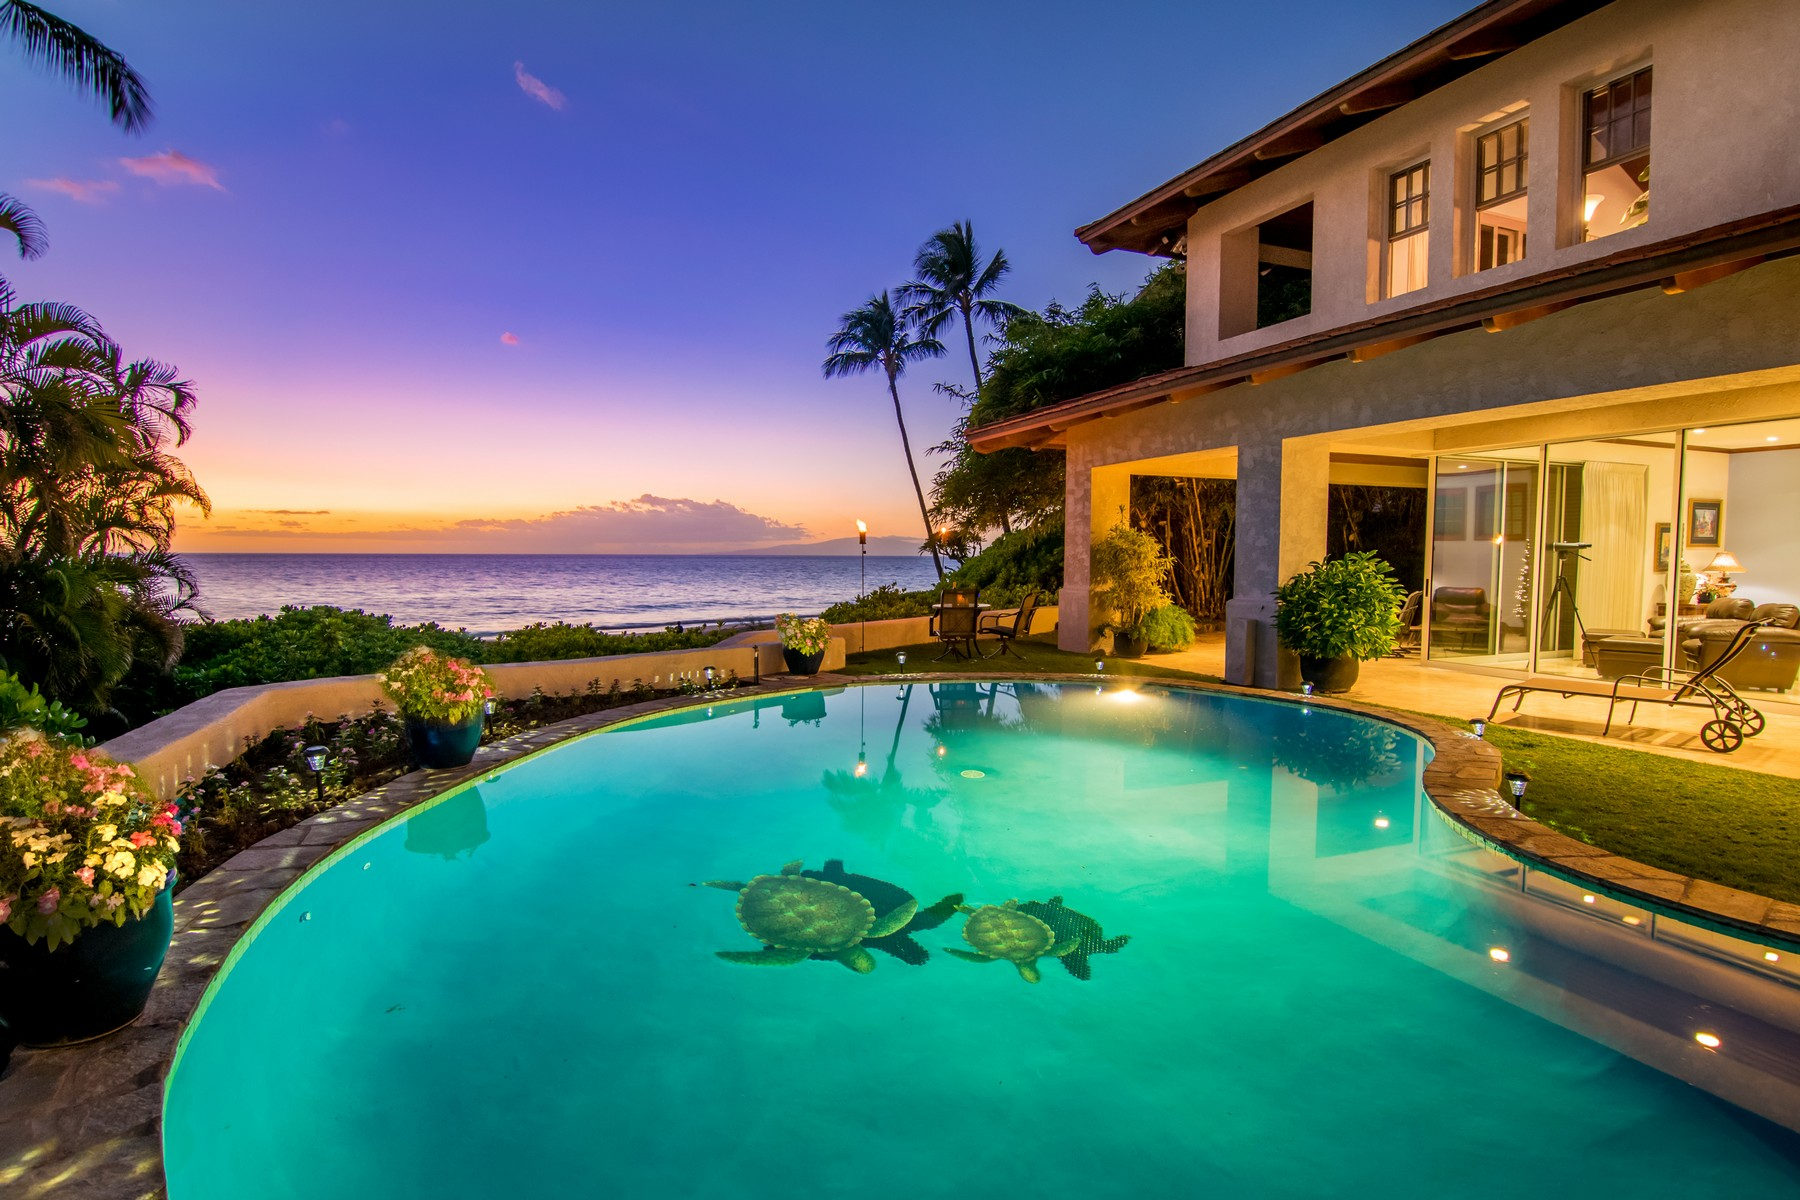 Maison unifamiliale pour l Vente à Elegant Oceanfront Estate On Maui's Finest Sandy Beach 3002 South Kihei Road Kihei, Hawaii 96753 États-Unis